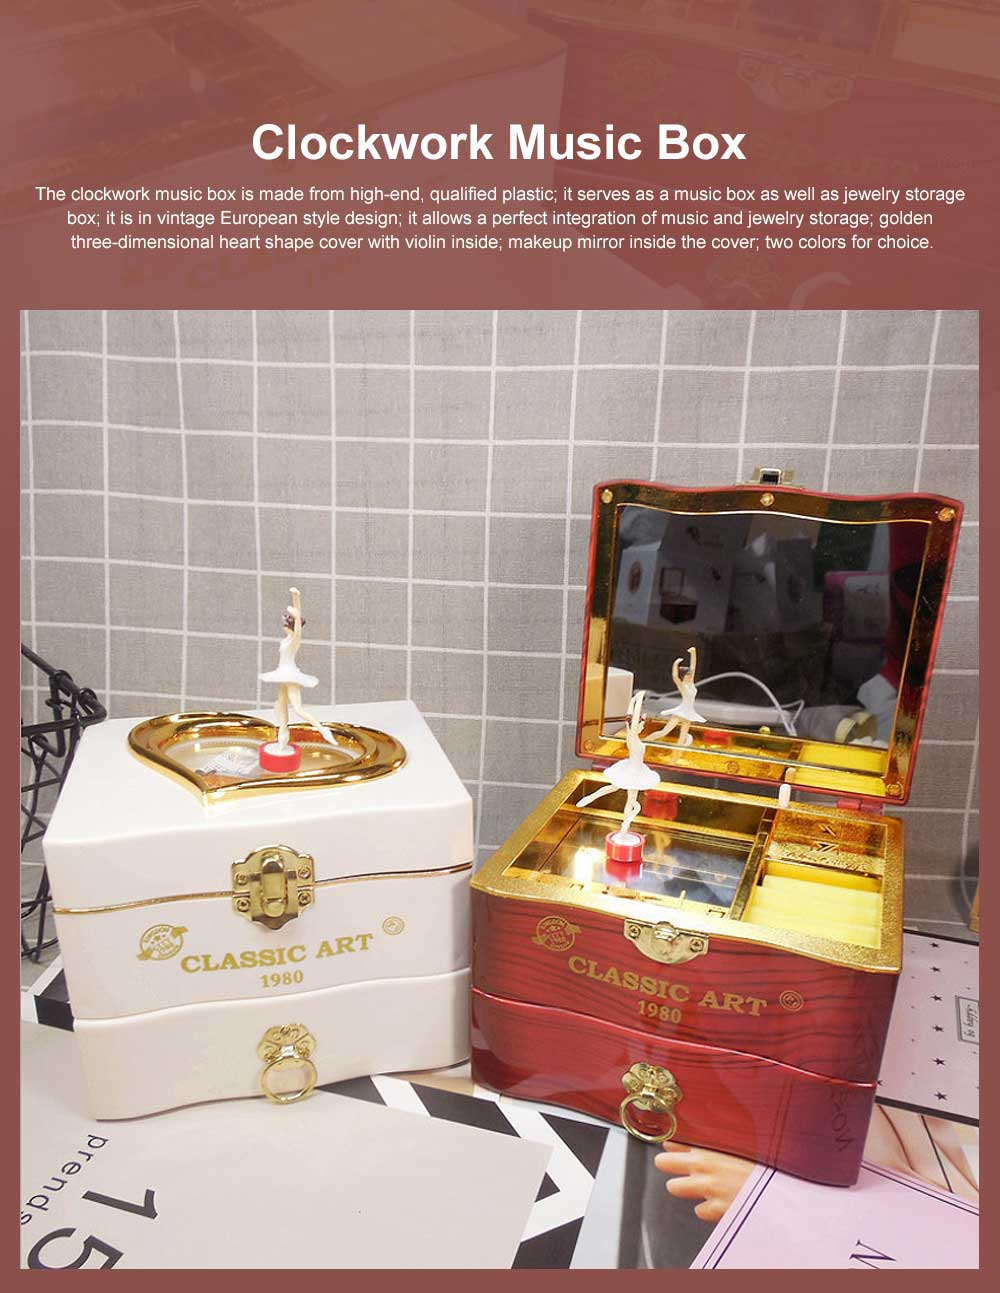 Classic Retro Style Dancing Girl Musical Box as Gift for Children or Girls, Clockwork Musical Box Creative Storage Box with Playing Music Jewelry 0